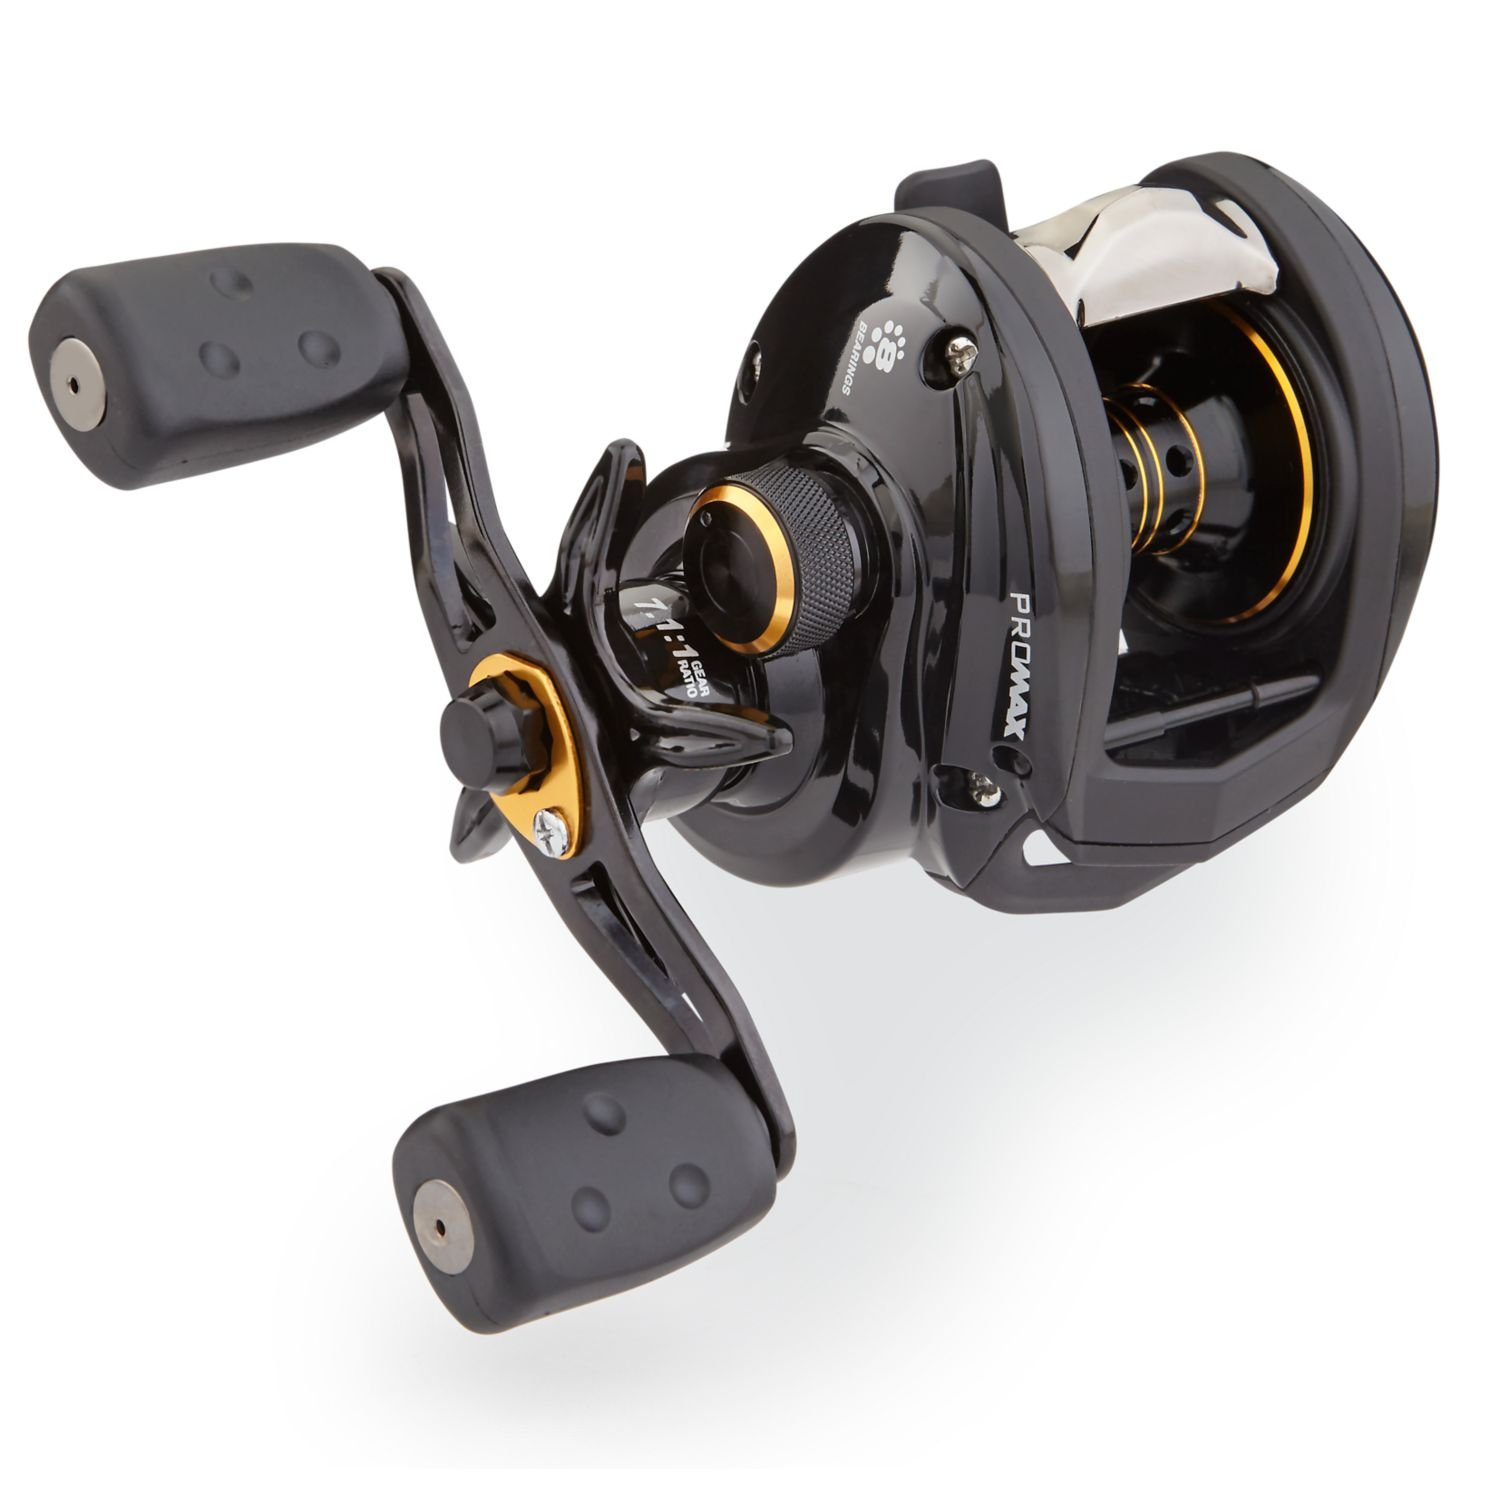 Abu-Garcia-Pro-Max-Low-Profile-Baitcasting-Fishing-Reel